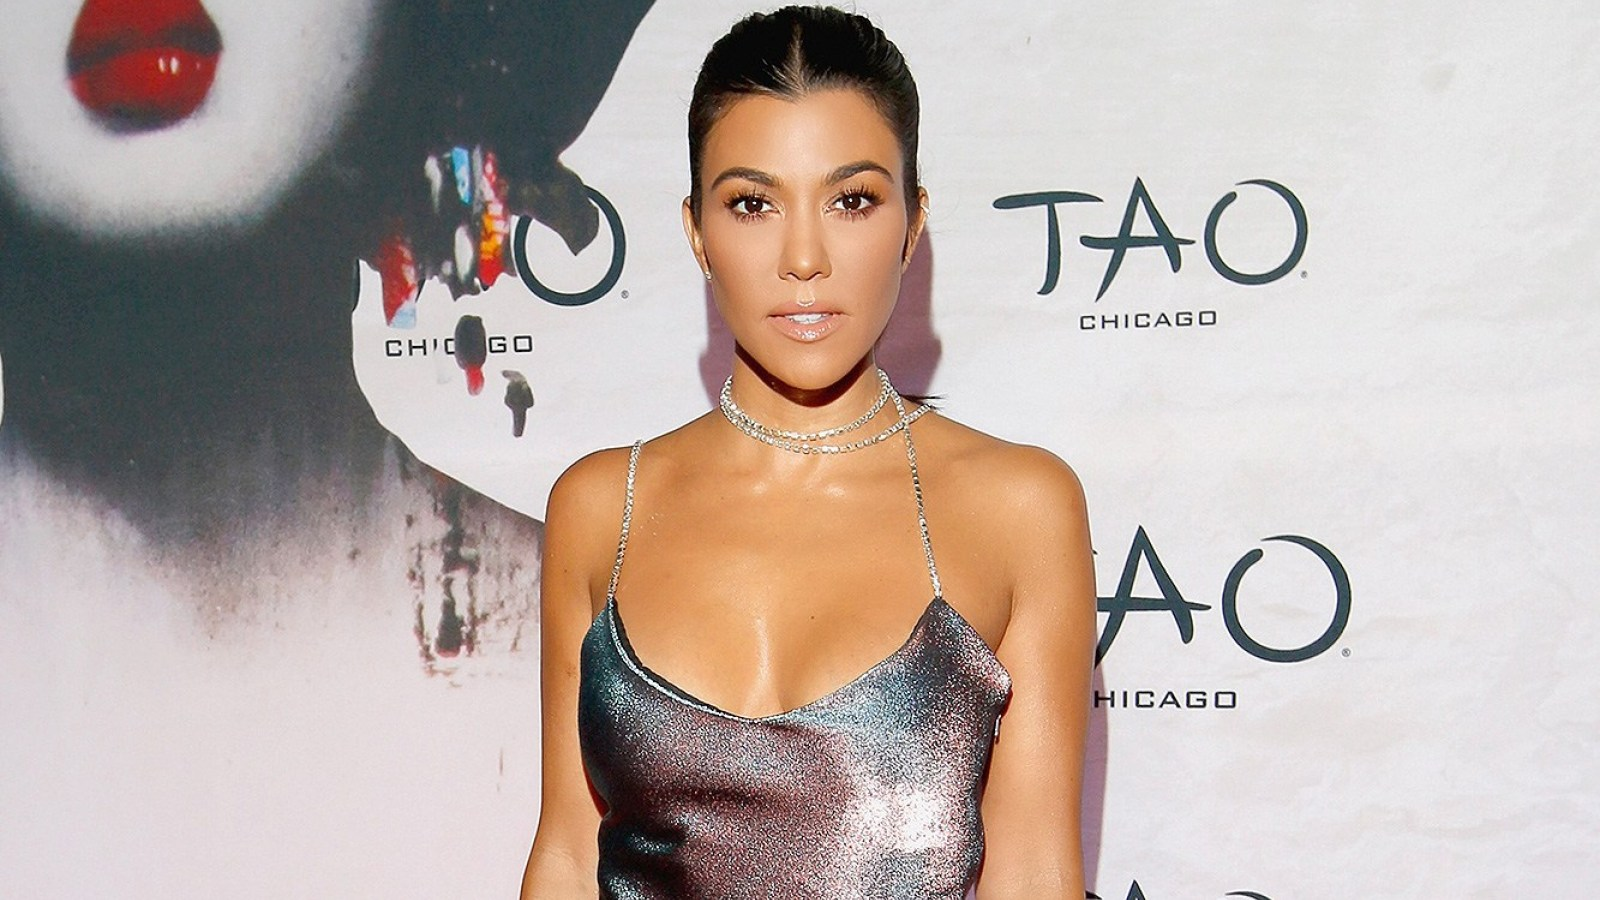 kourtney-kardashian-reportedly-shocked-wendy-williams-defended-her-despite-attacking-her-so-many-times-before